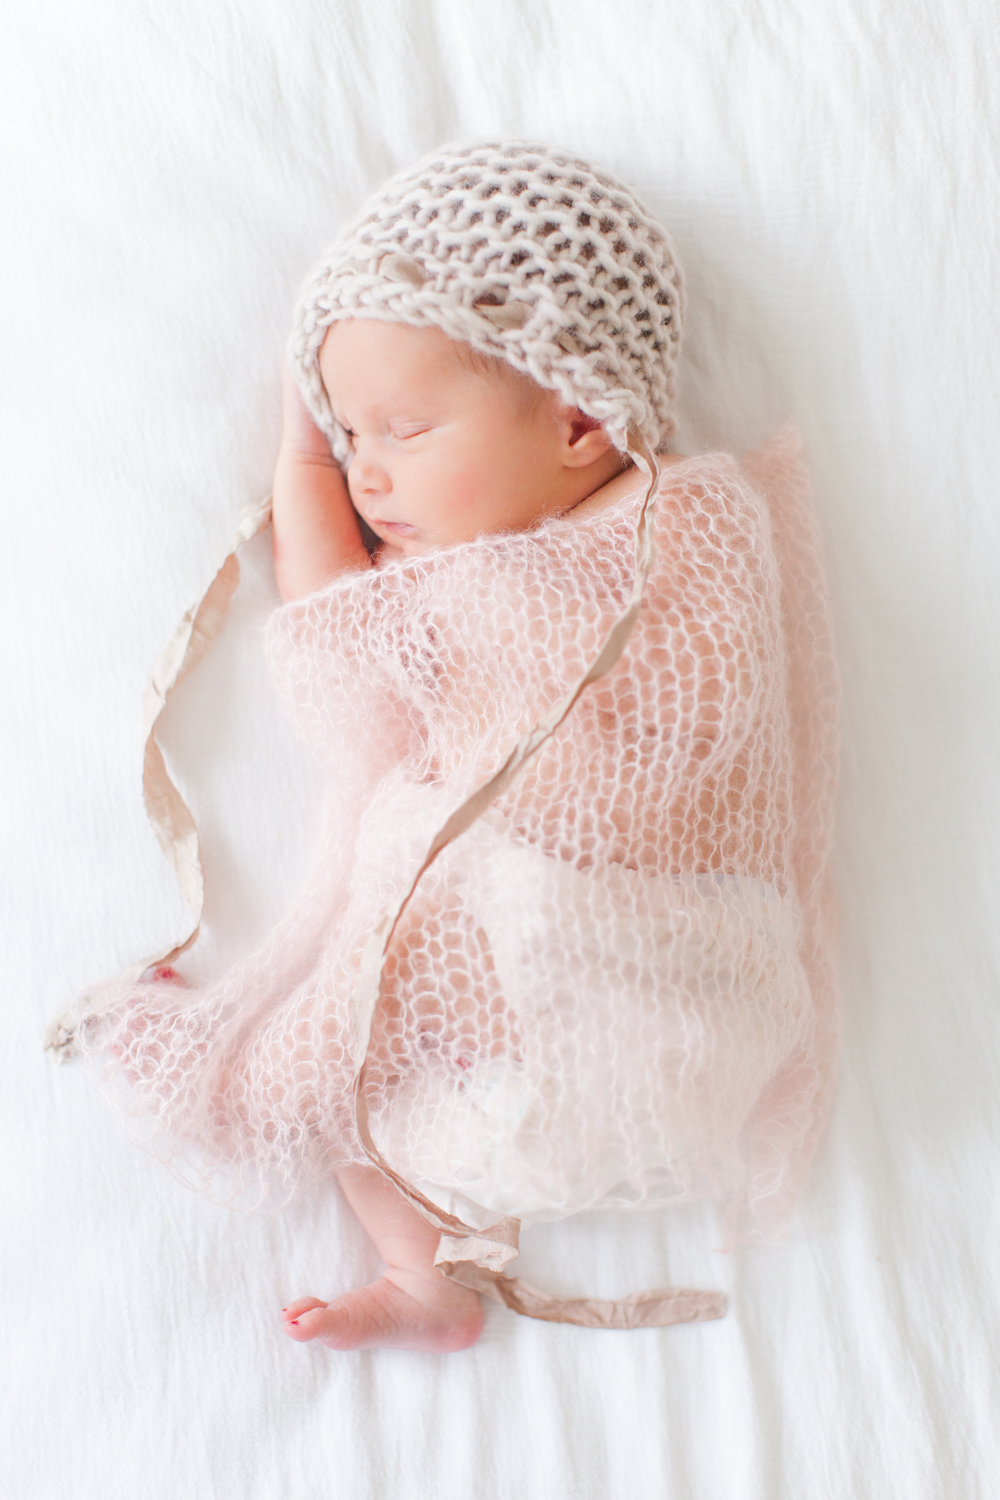 New Born photography tips by Monika Hibbs